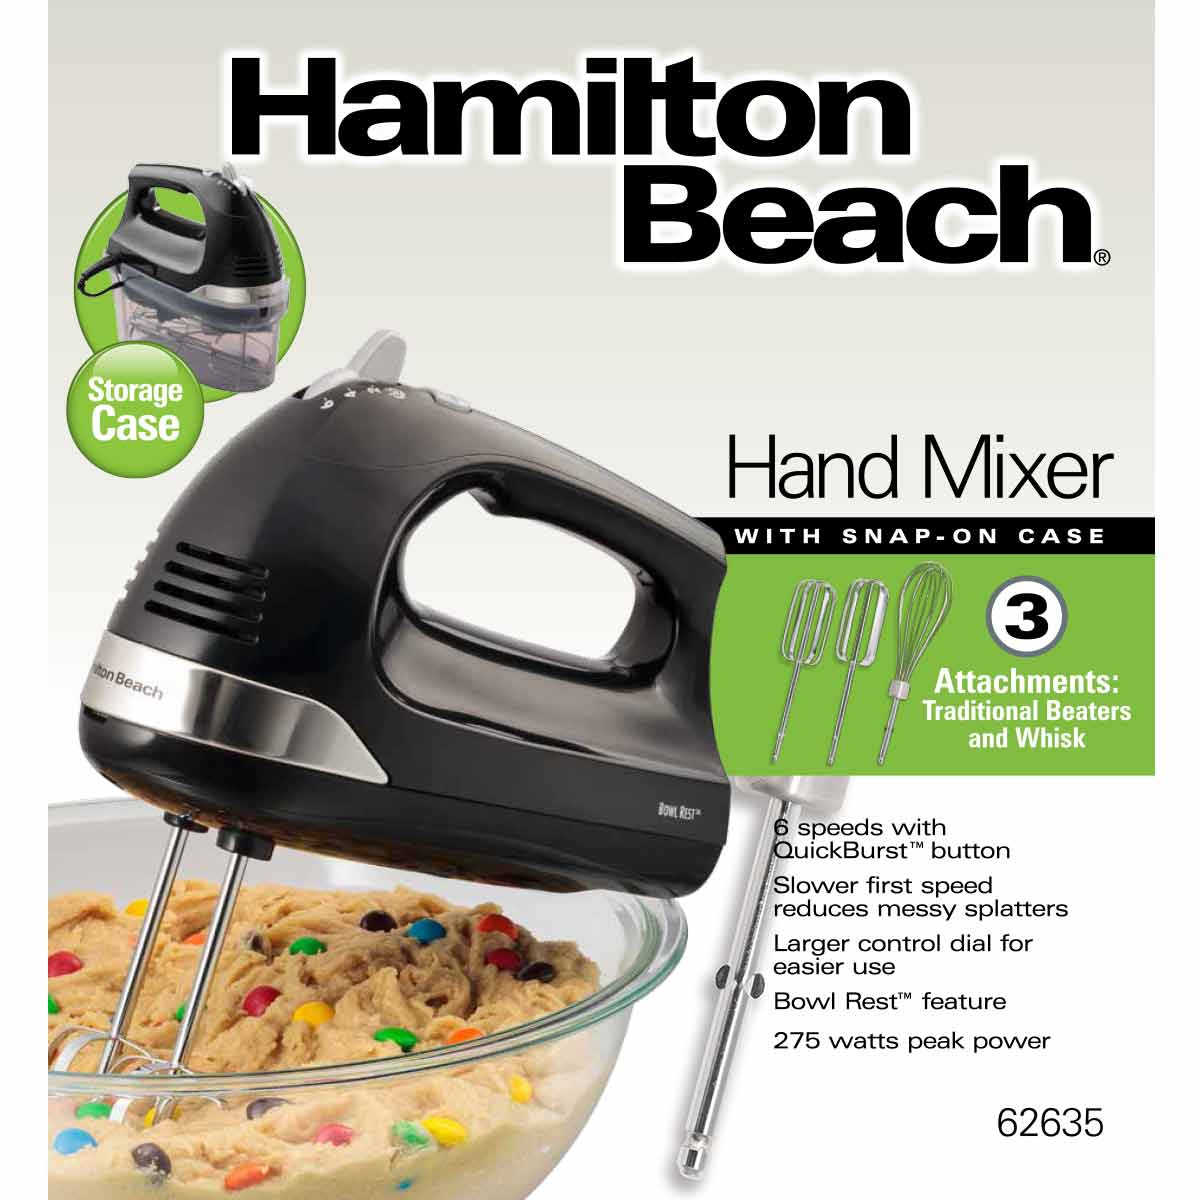 Hand Mixer with Snap-On Case (62635)